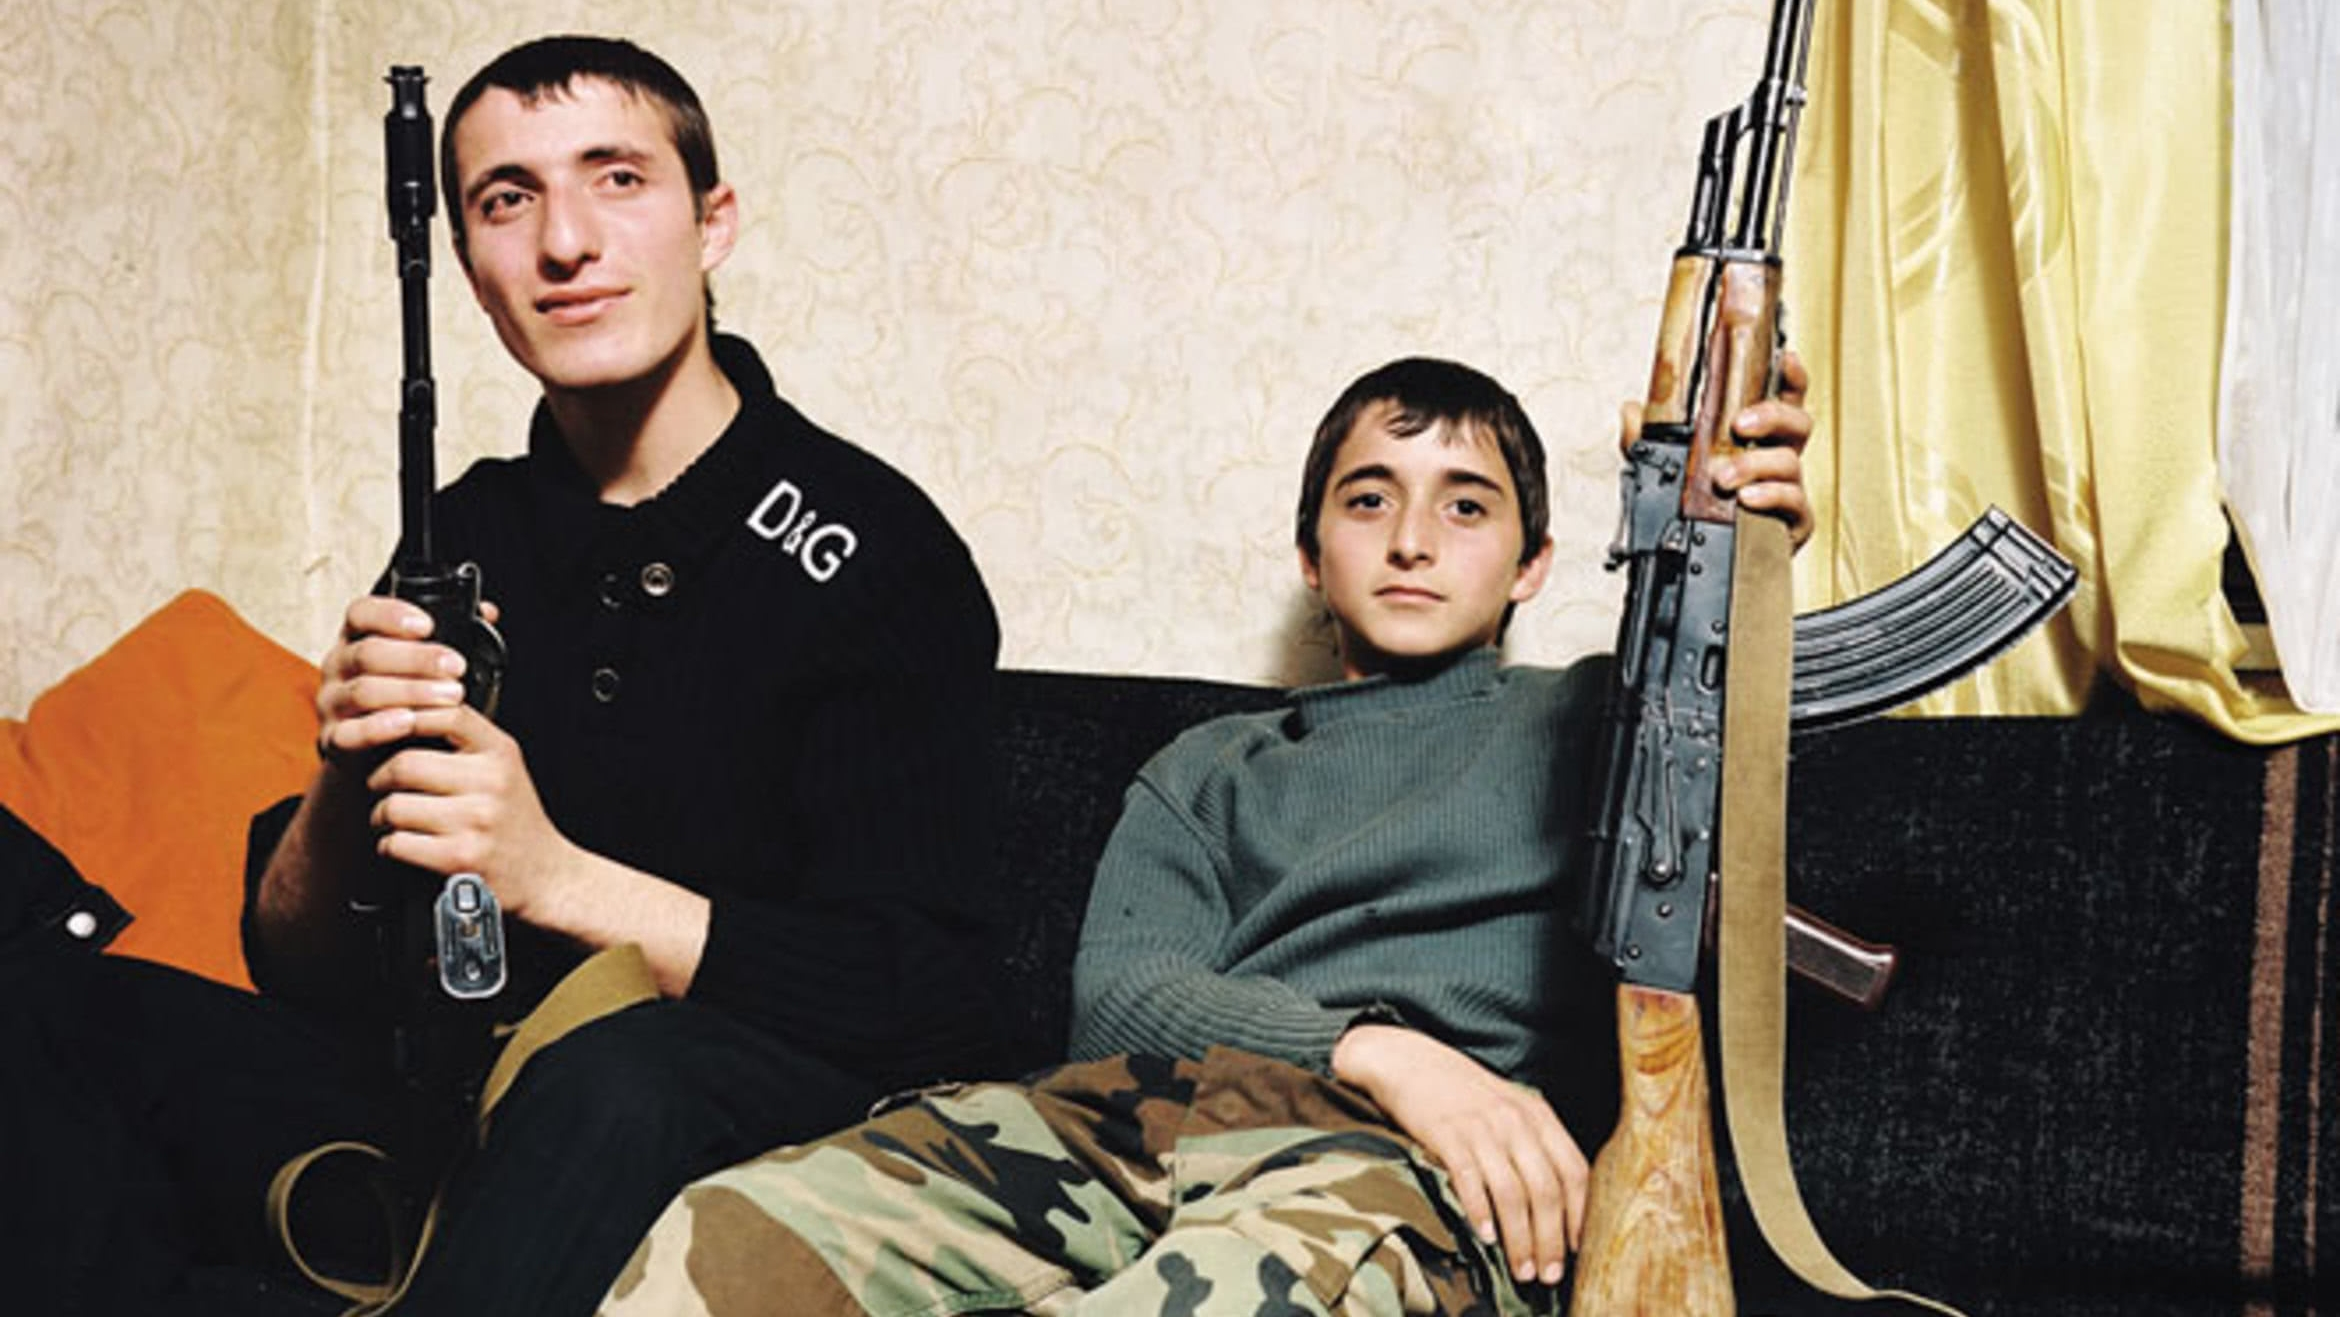 More stories on violence, conflict and its aftermath: - The Sochi Project